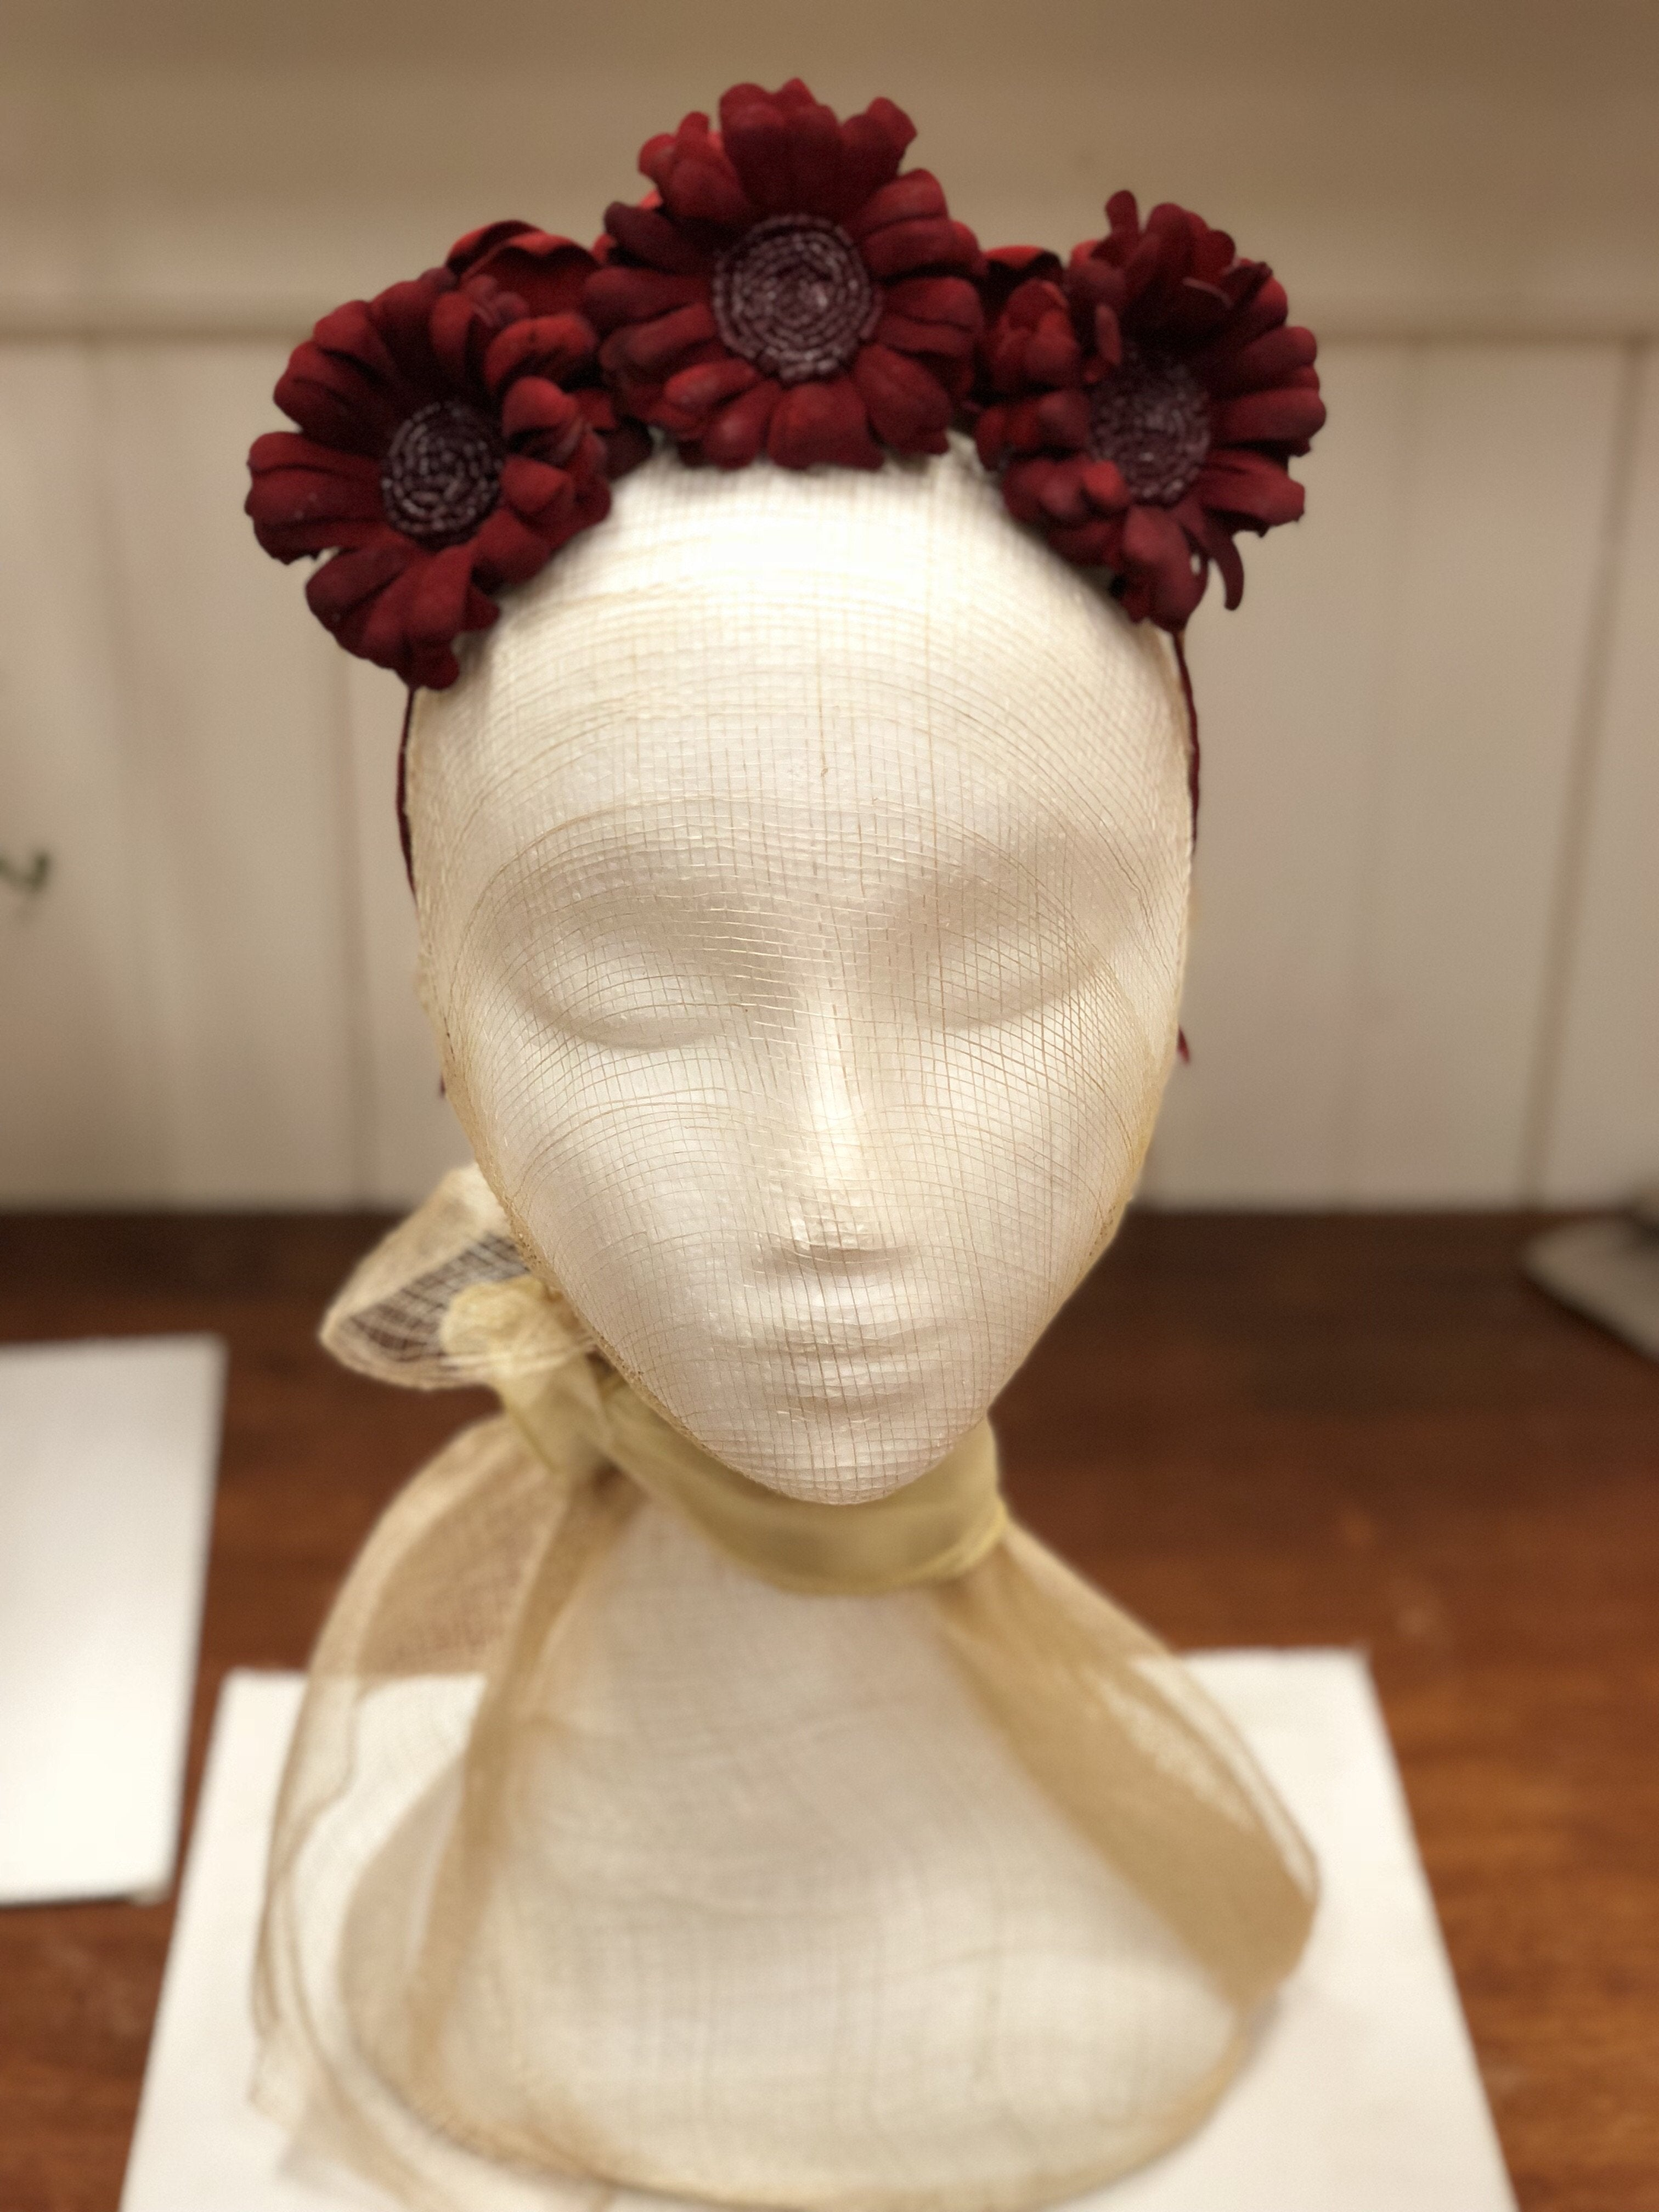 Fleur Cuir Leather Daisies Headband in Deep Red Suede - Lookbook Boutique